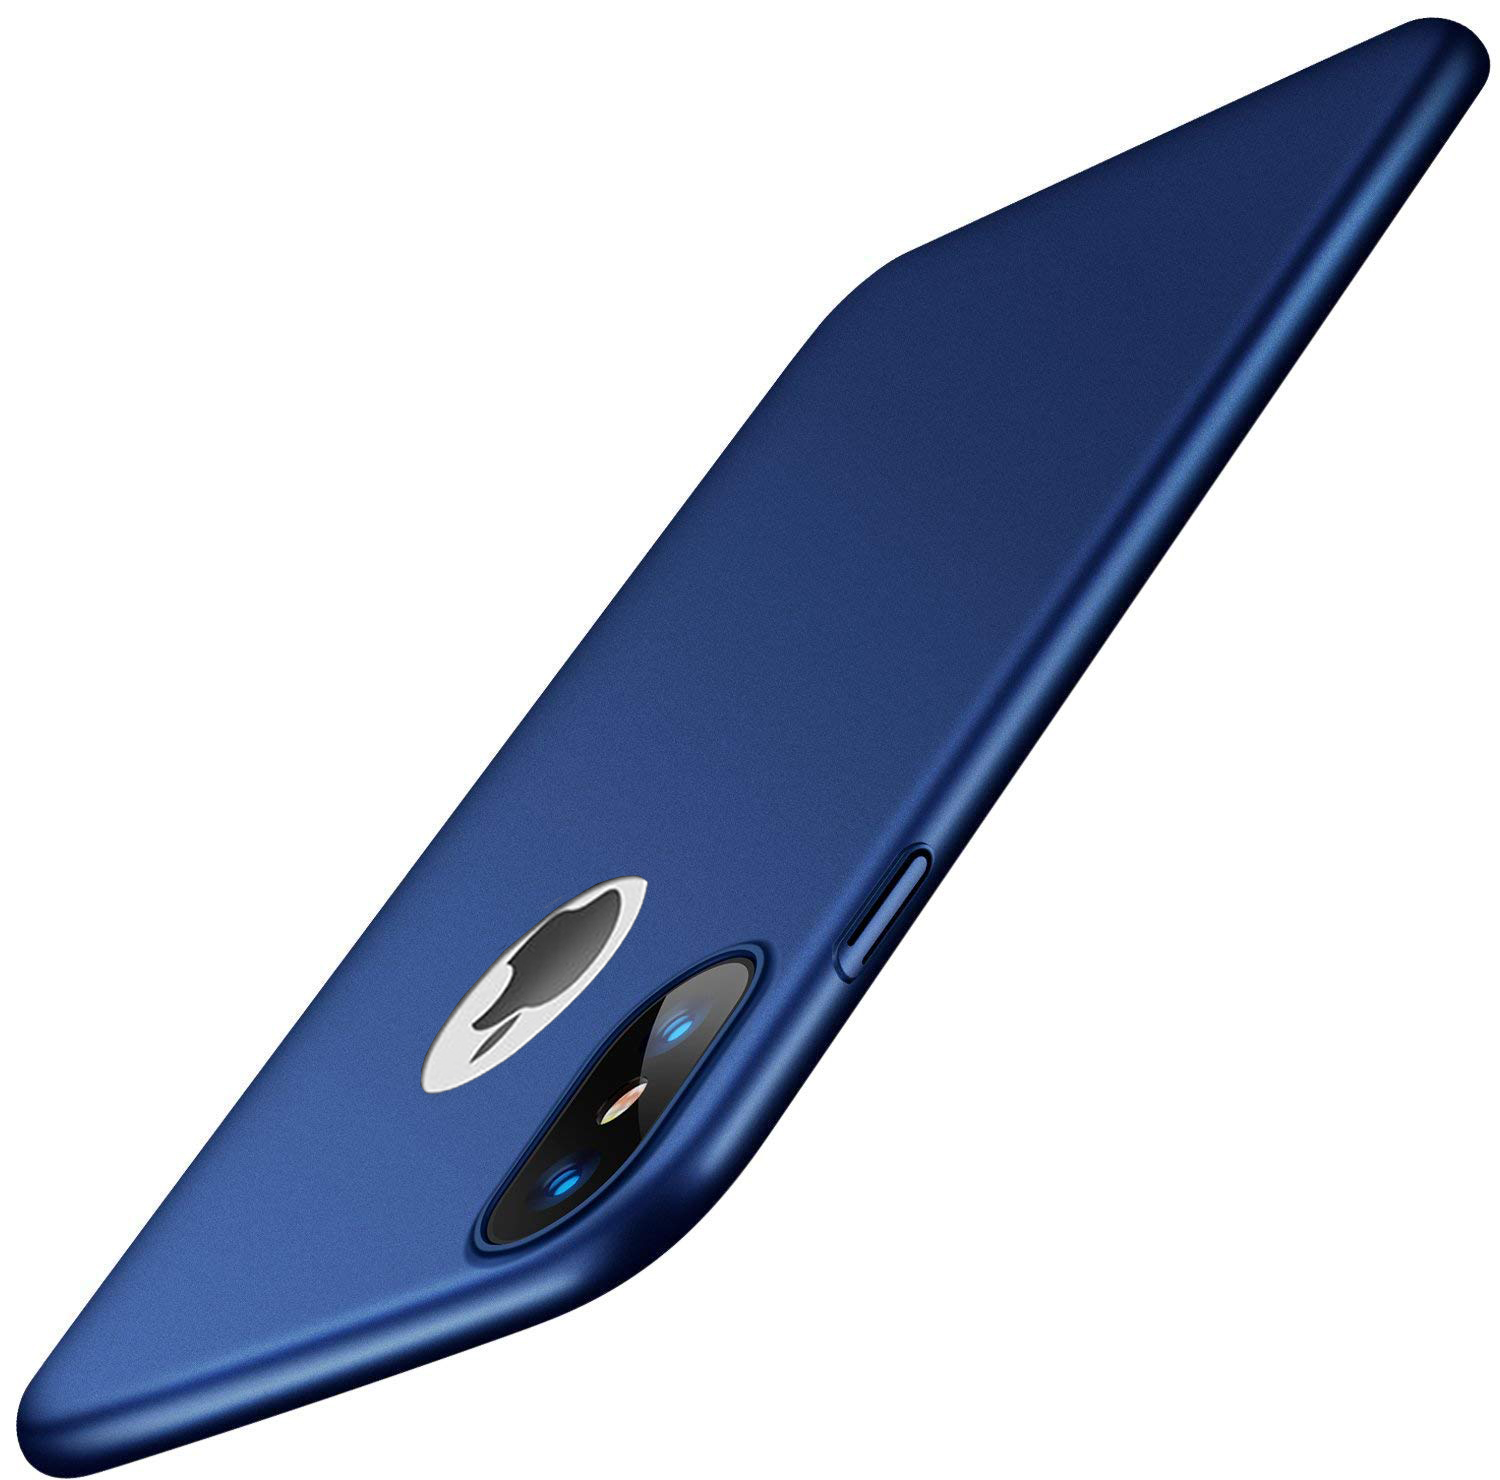 Thin-Slim-Hard-Case-Tempered-Glass-Cover-For-Apple-iPhone-X-XS-XR-Max-10-8-7-6s miniatuur 60